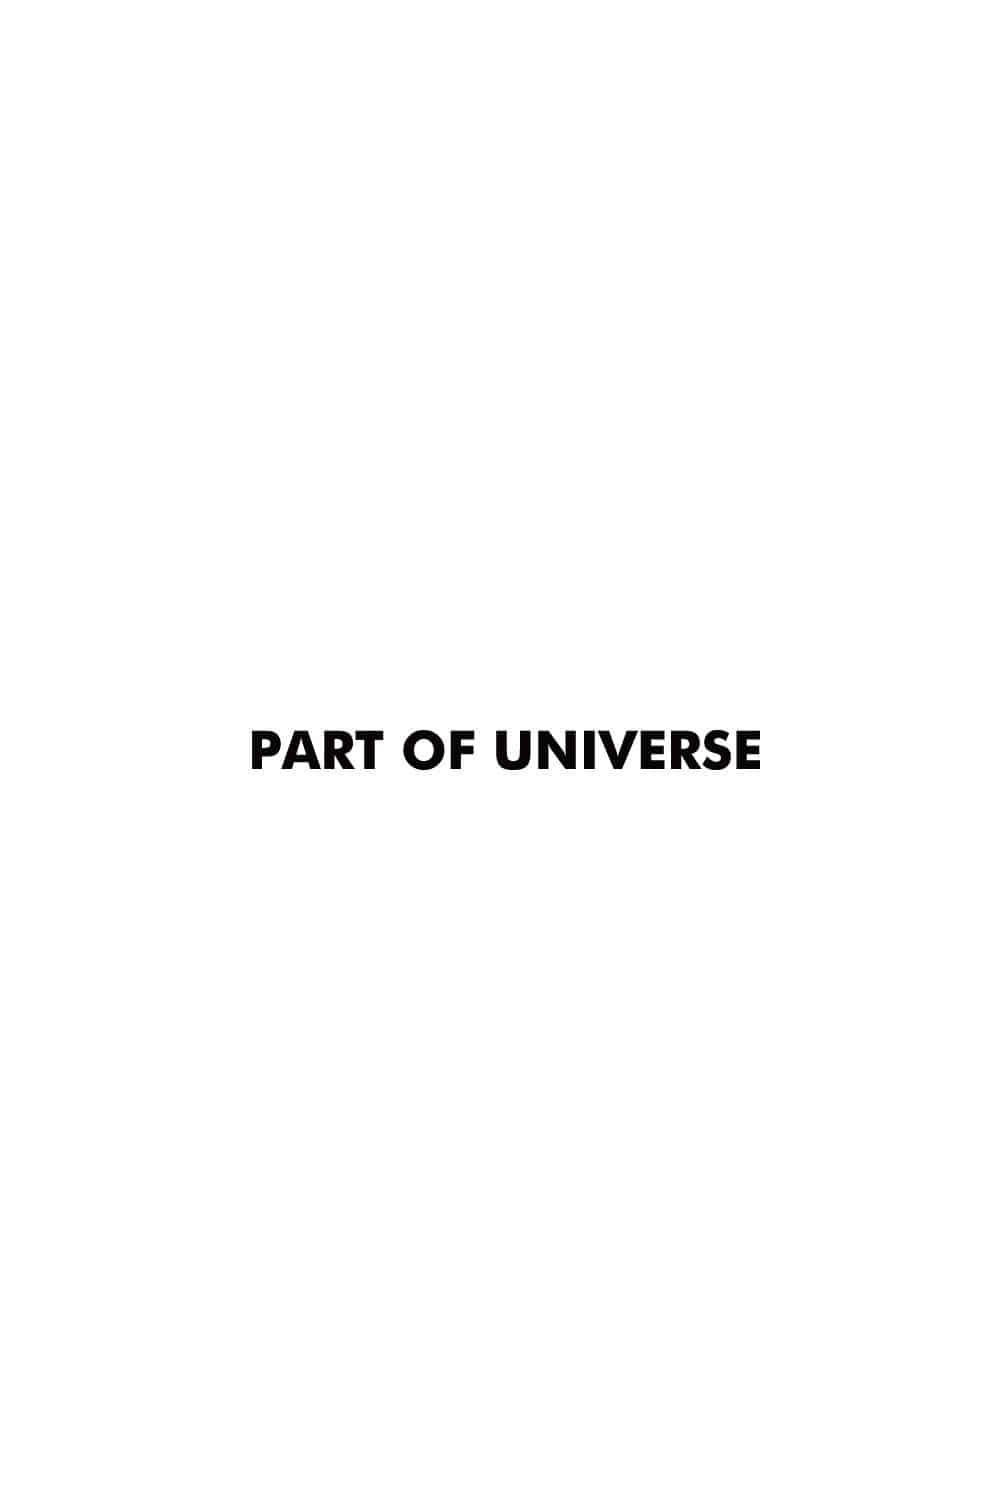 PART OF UNIVERSE